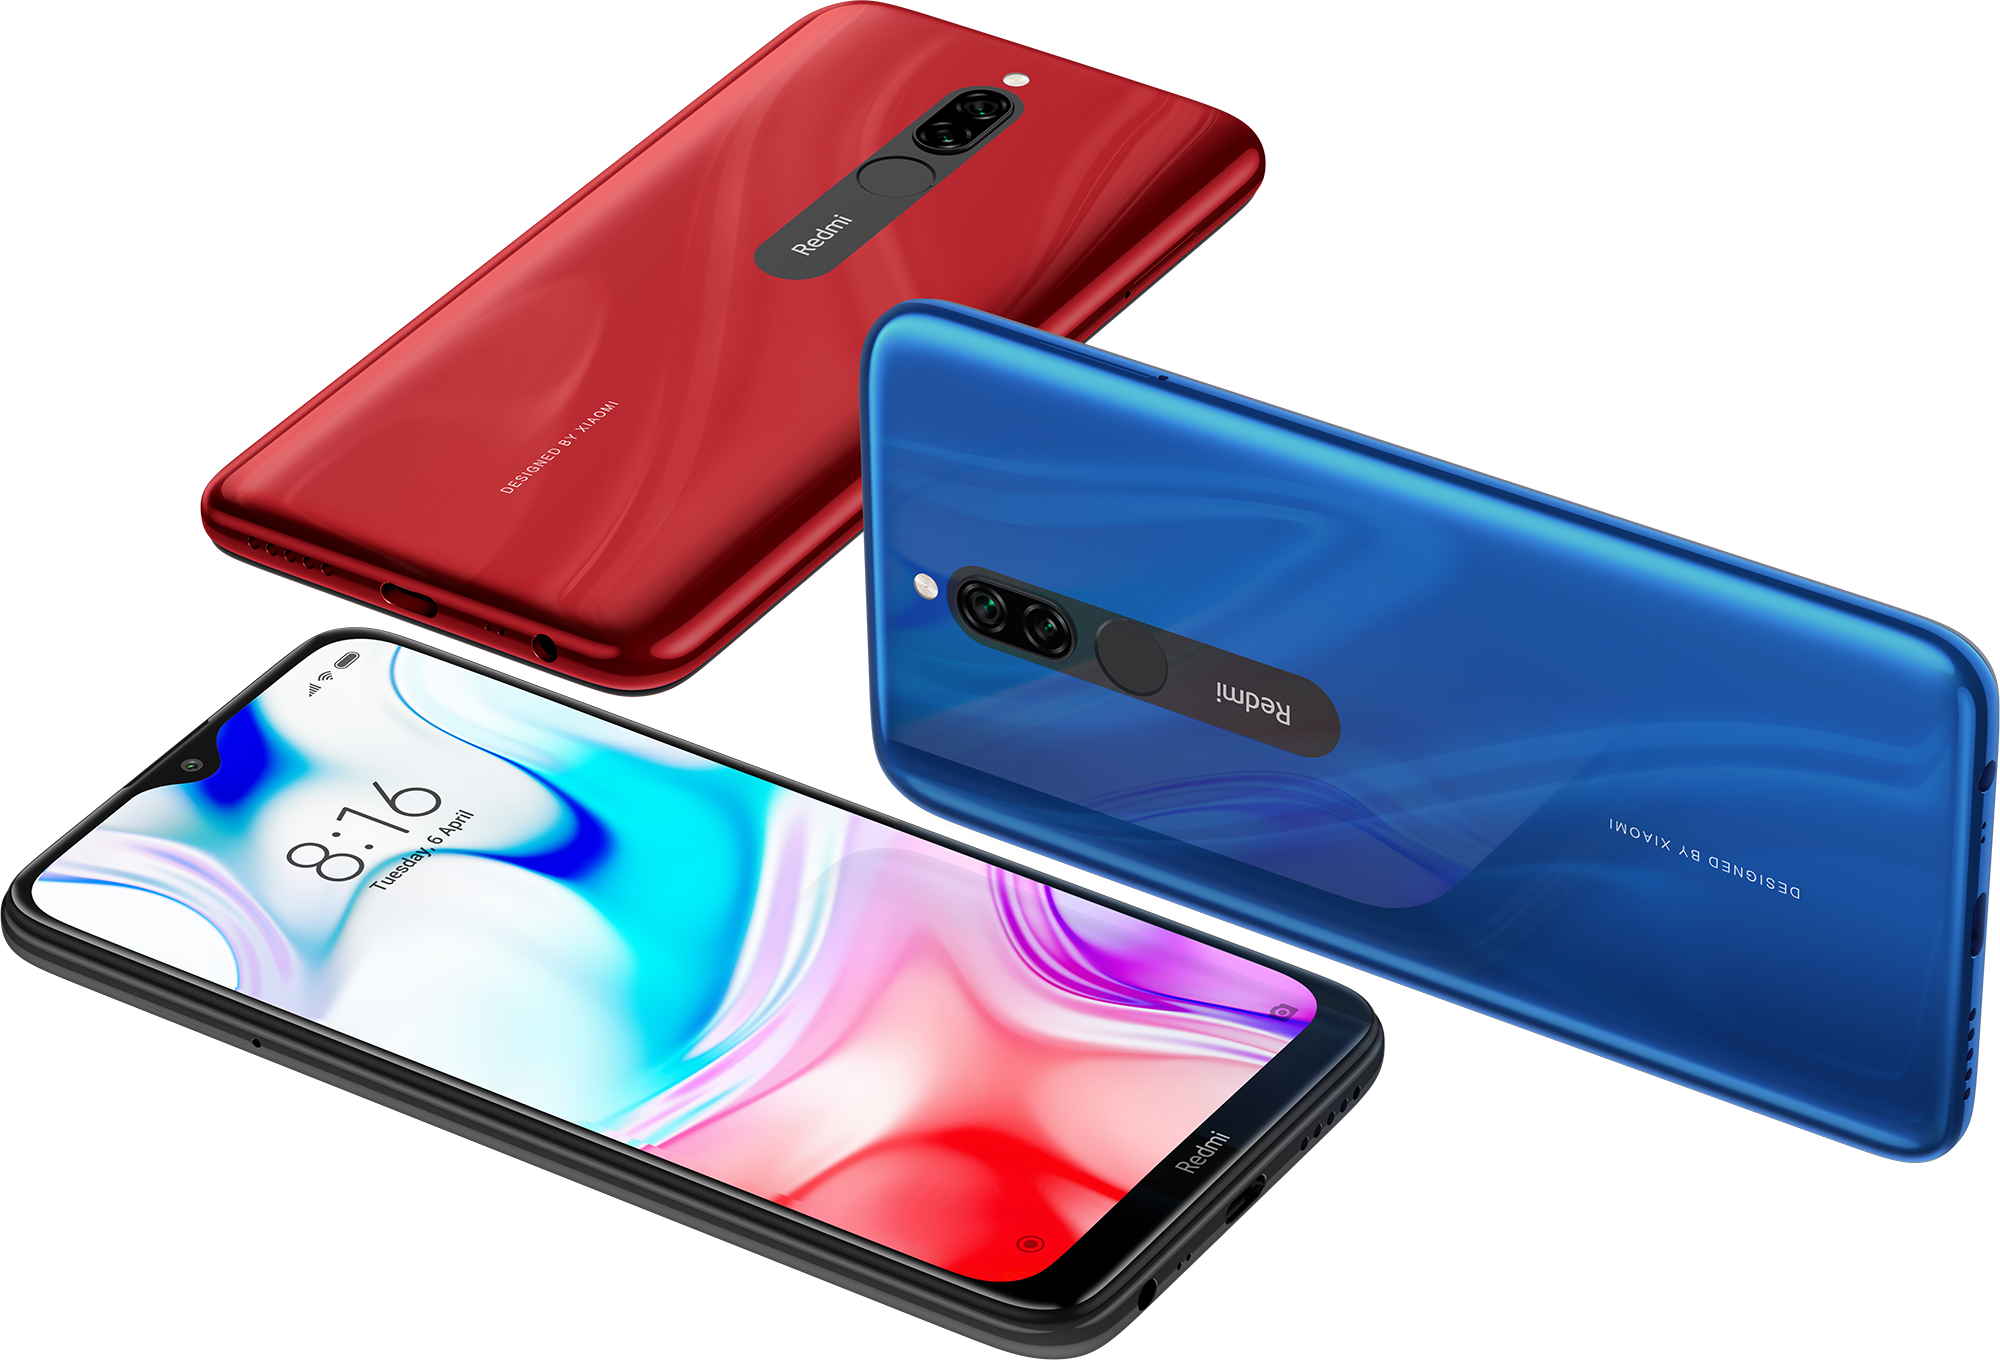 Xiaomi Redmi 9 with a MediaTek chipset to launch early next year